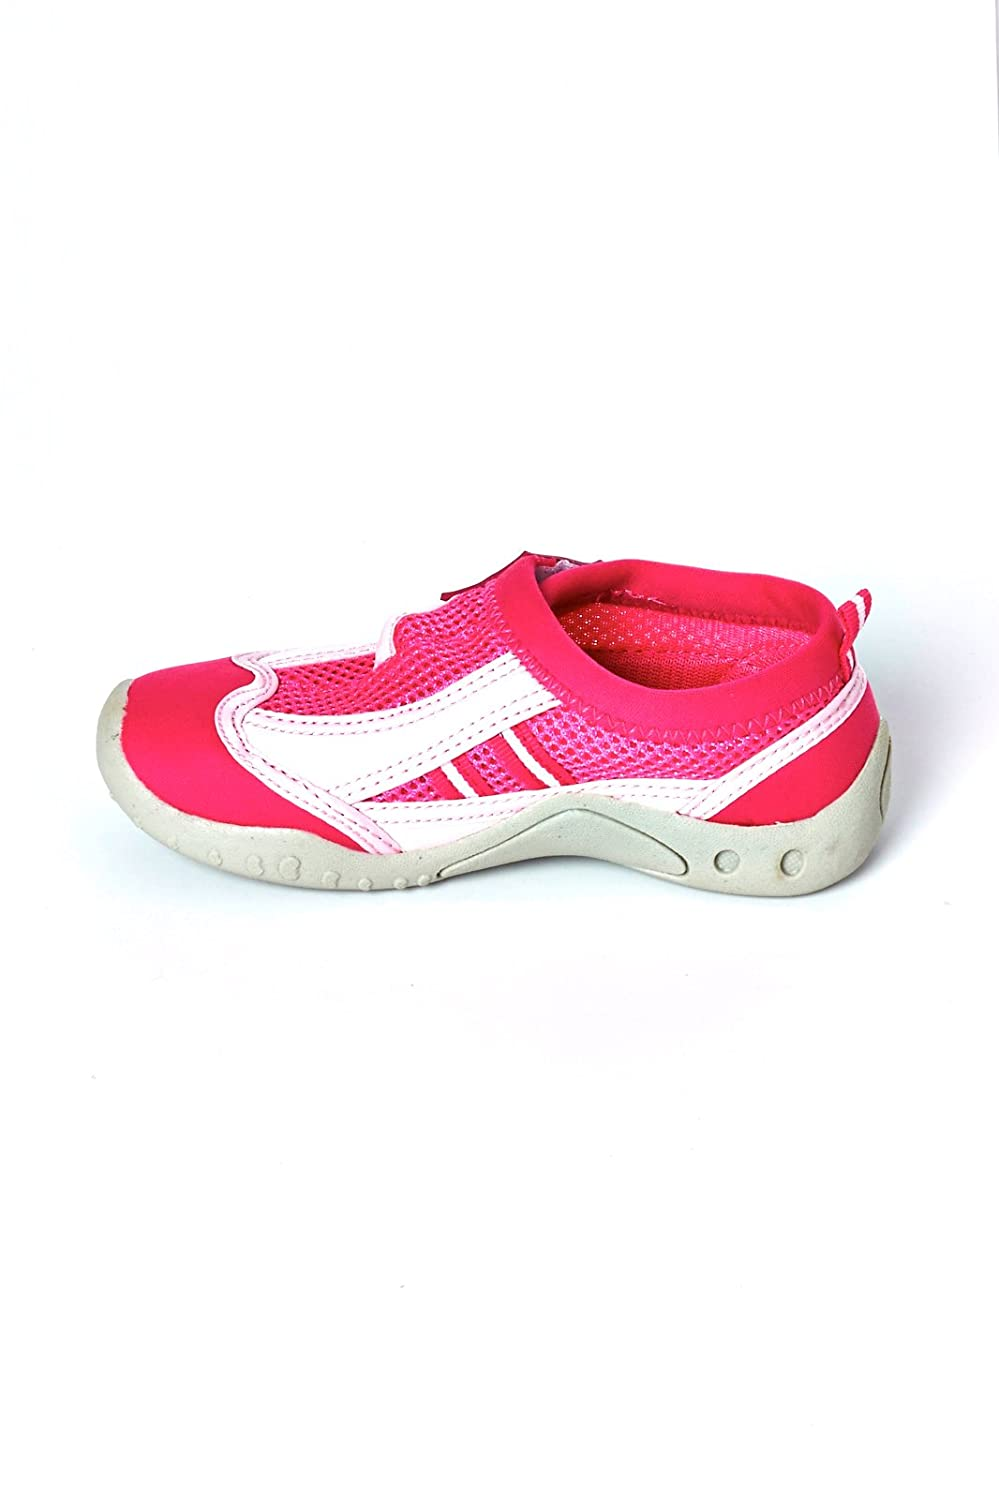 High Style Little and Big Kid's Aqua Water Shoes - Beach Shoes with Velcro closure красавица и чудовище dvd книга